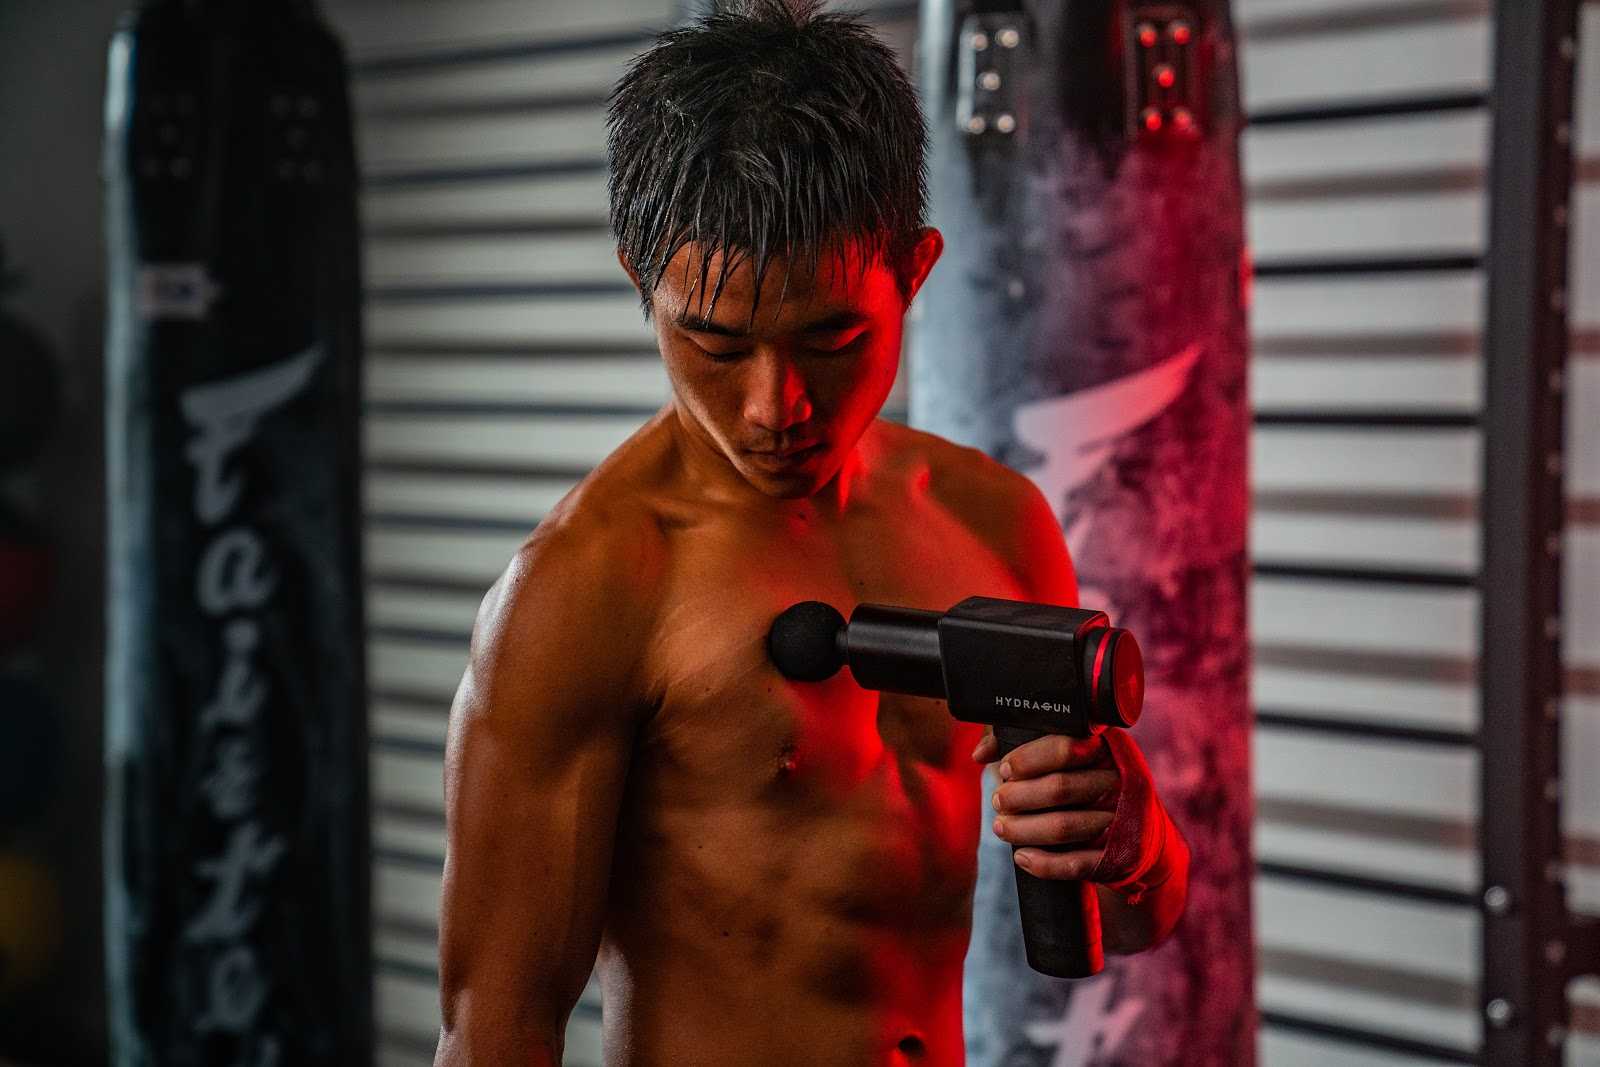 Photo of athlete using HYDRAGUN massage gun